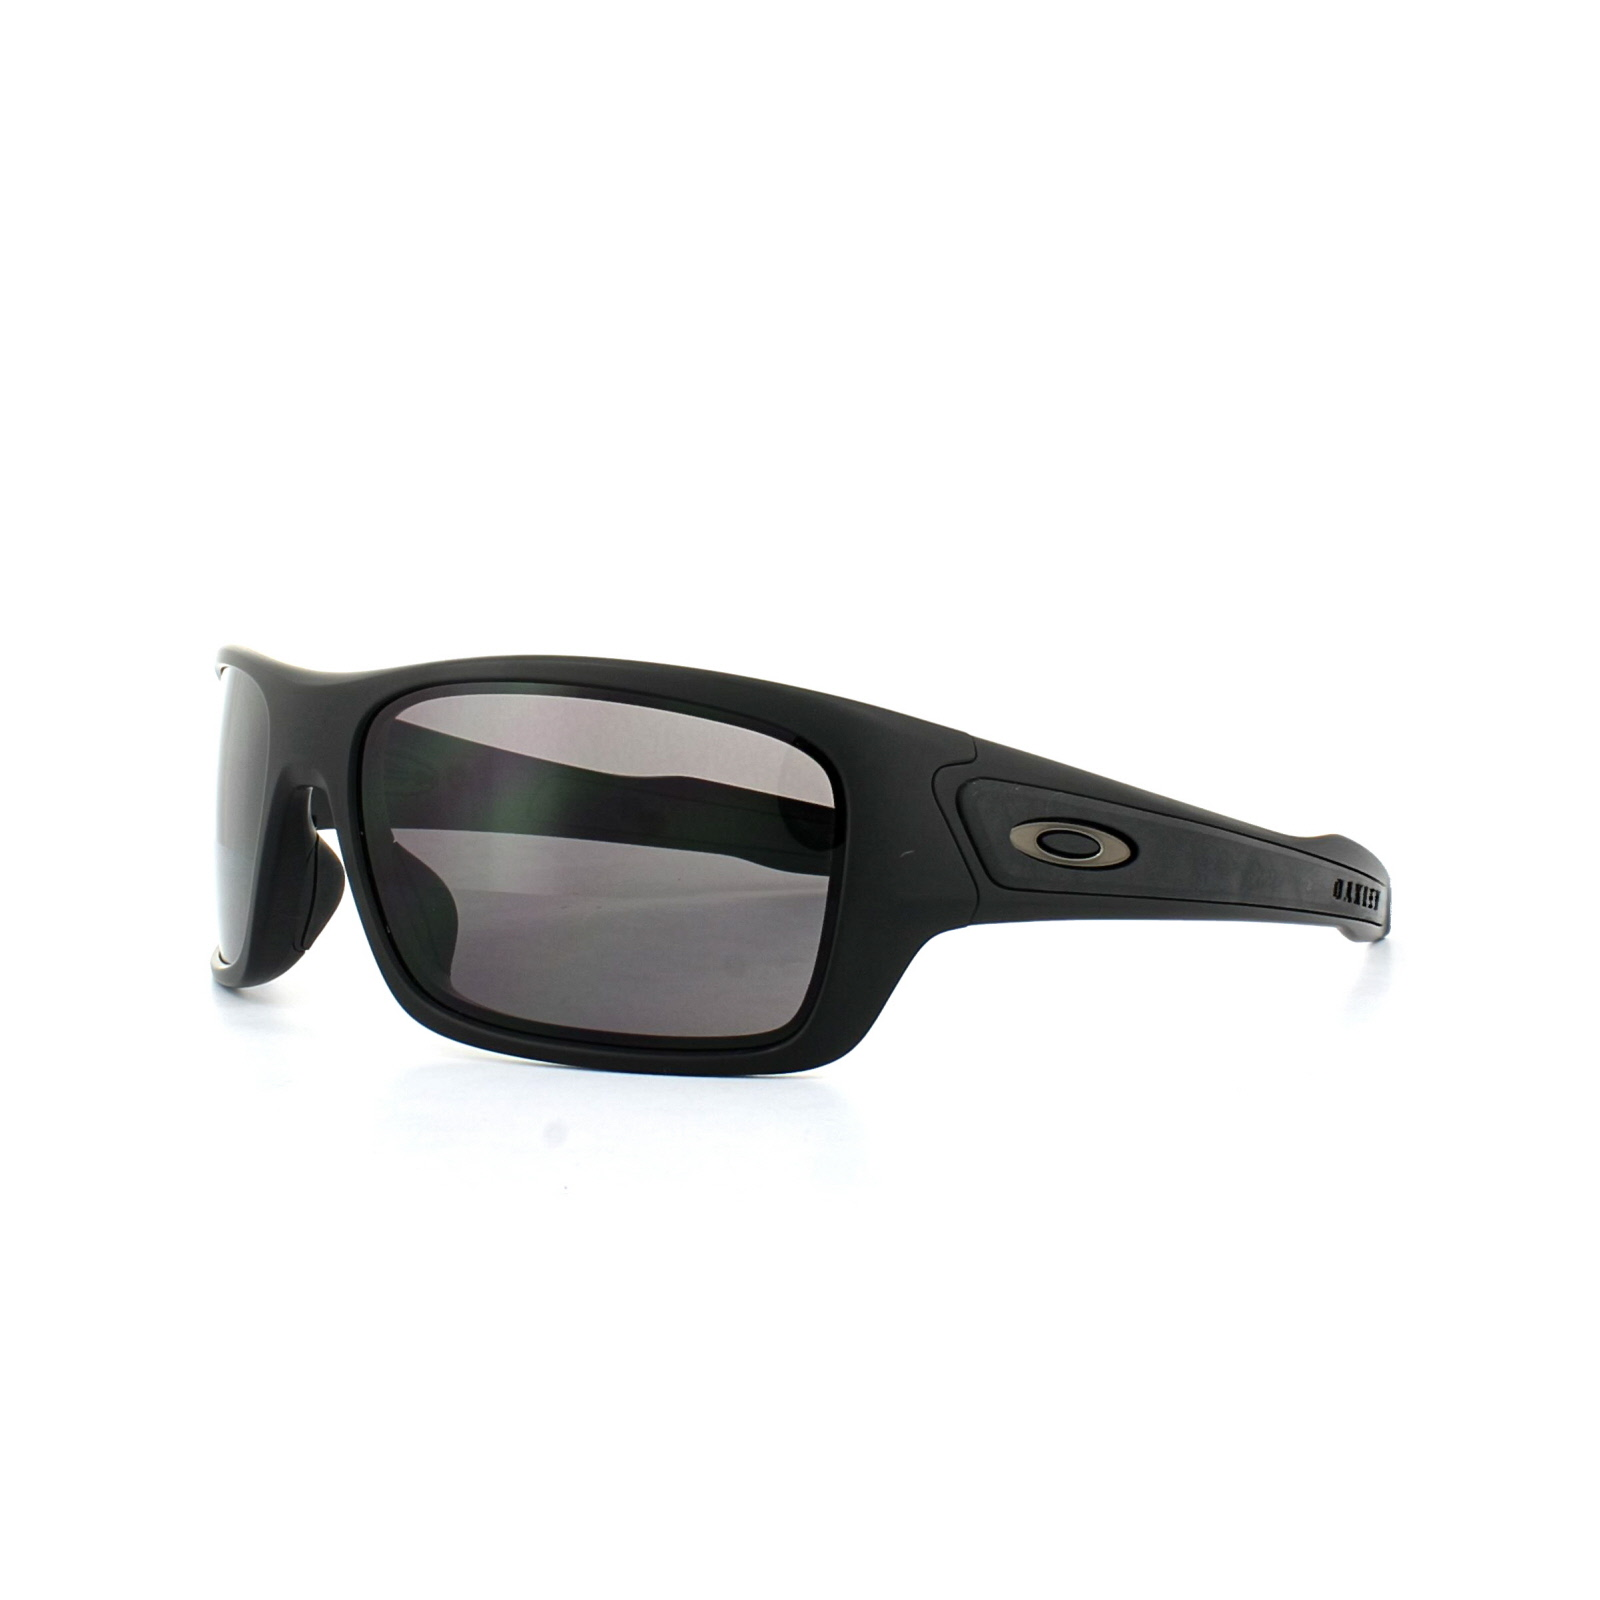 3a86d0b0e4 Sentinel Oakley Sunglasses Turbine XS Youth Fit OJ9003-01 Matt Black Warm  Grey